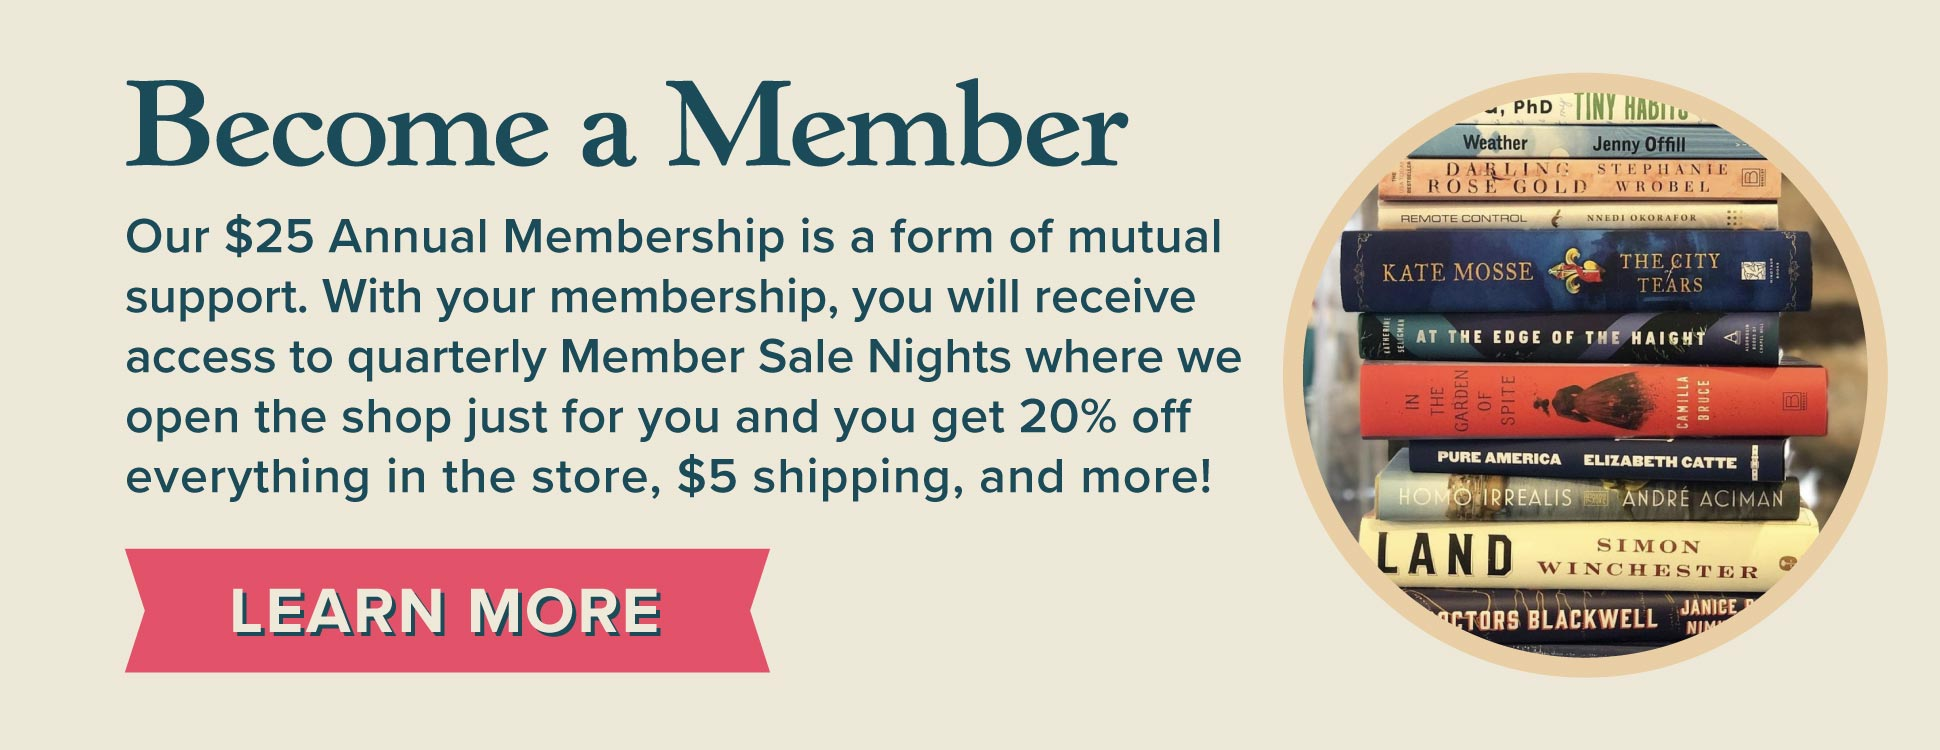 Become a Member. Click here to learn more about purchasing an Old Town Books Membership.